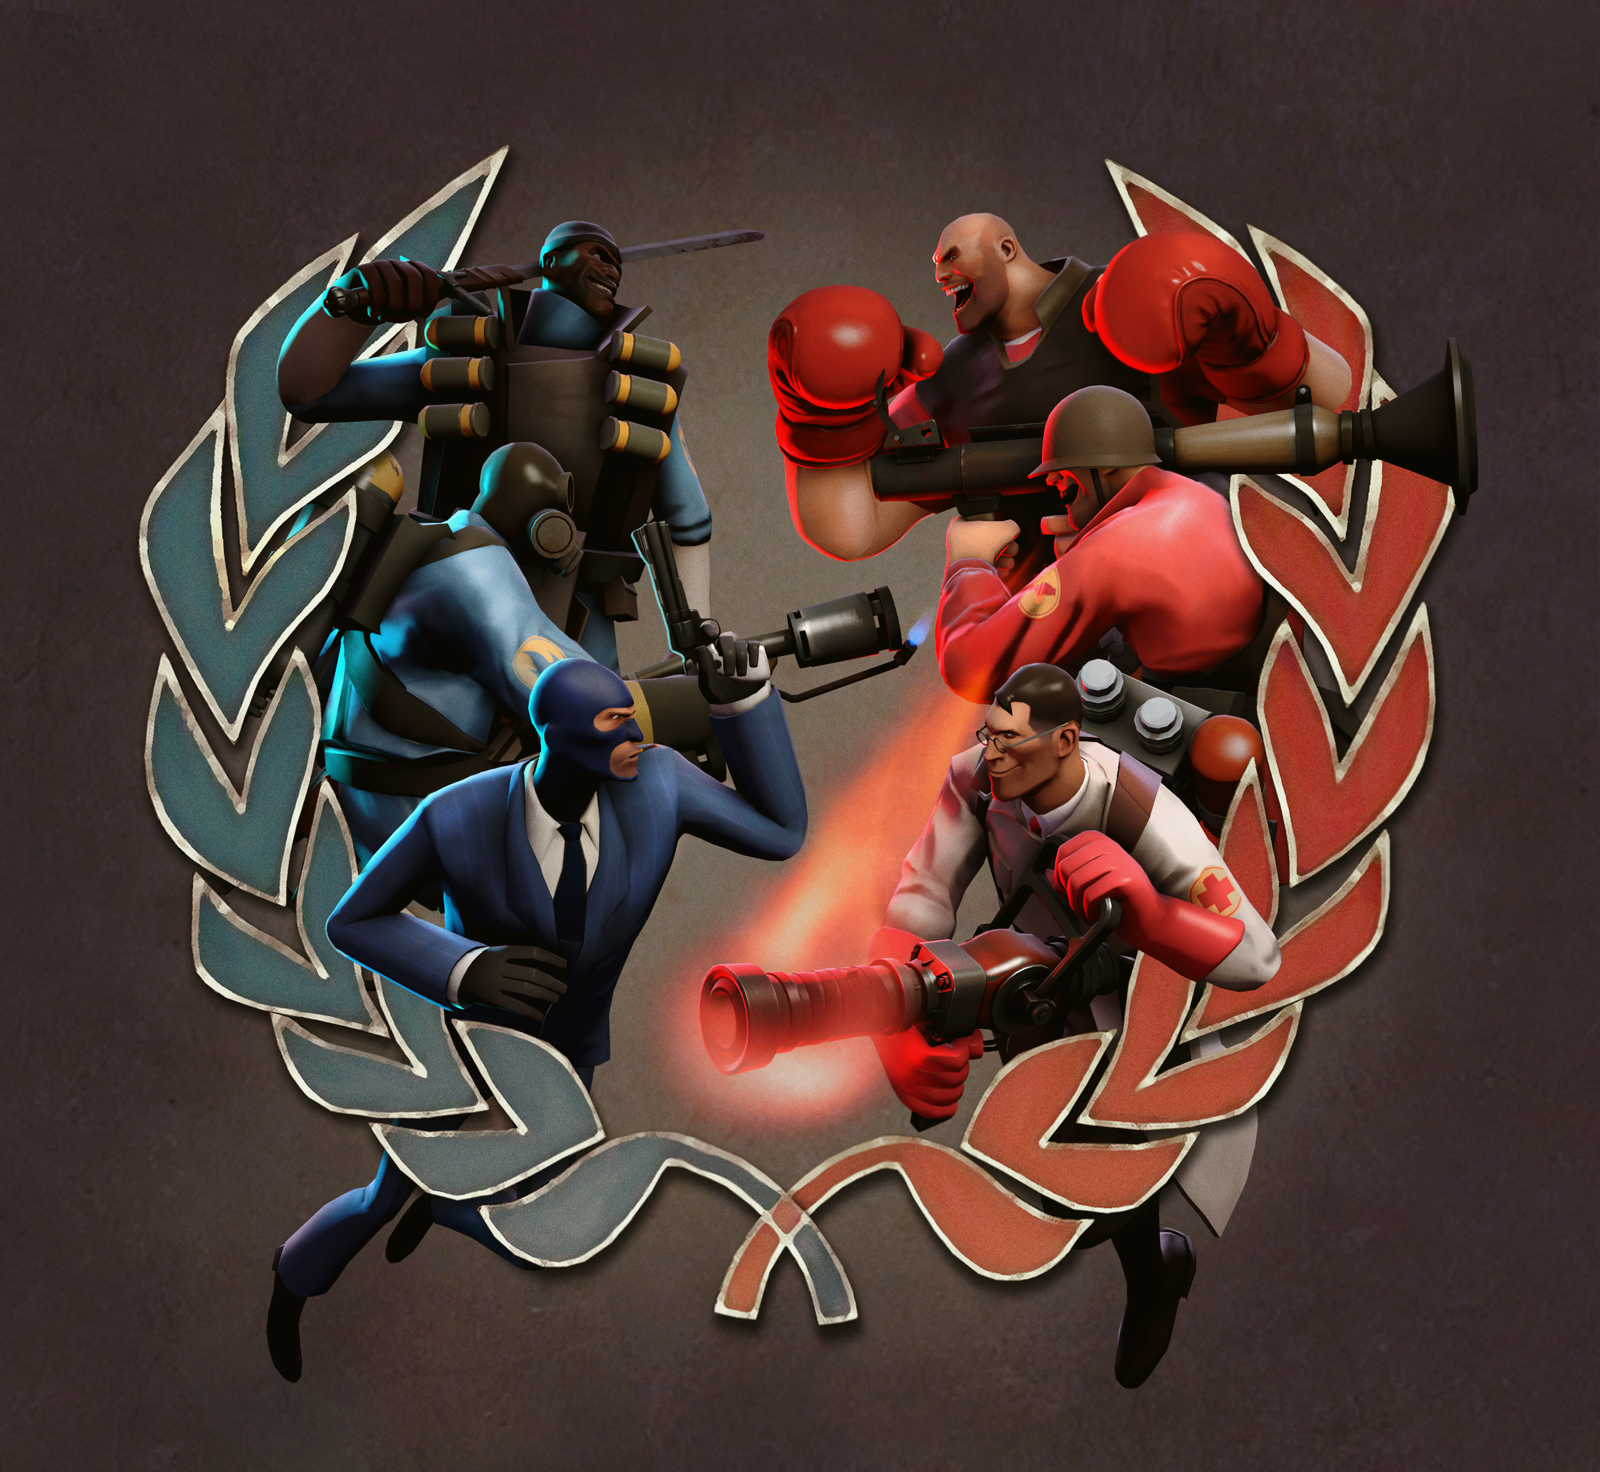 Tf2 matchmaking sfm Private Dating With Horny Persons